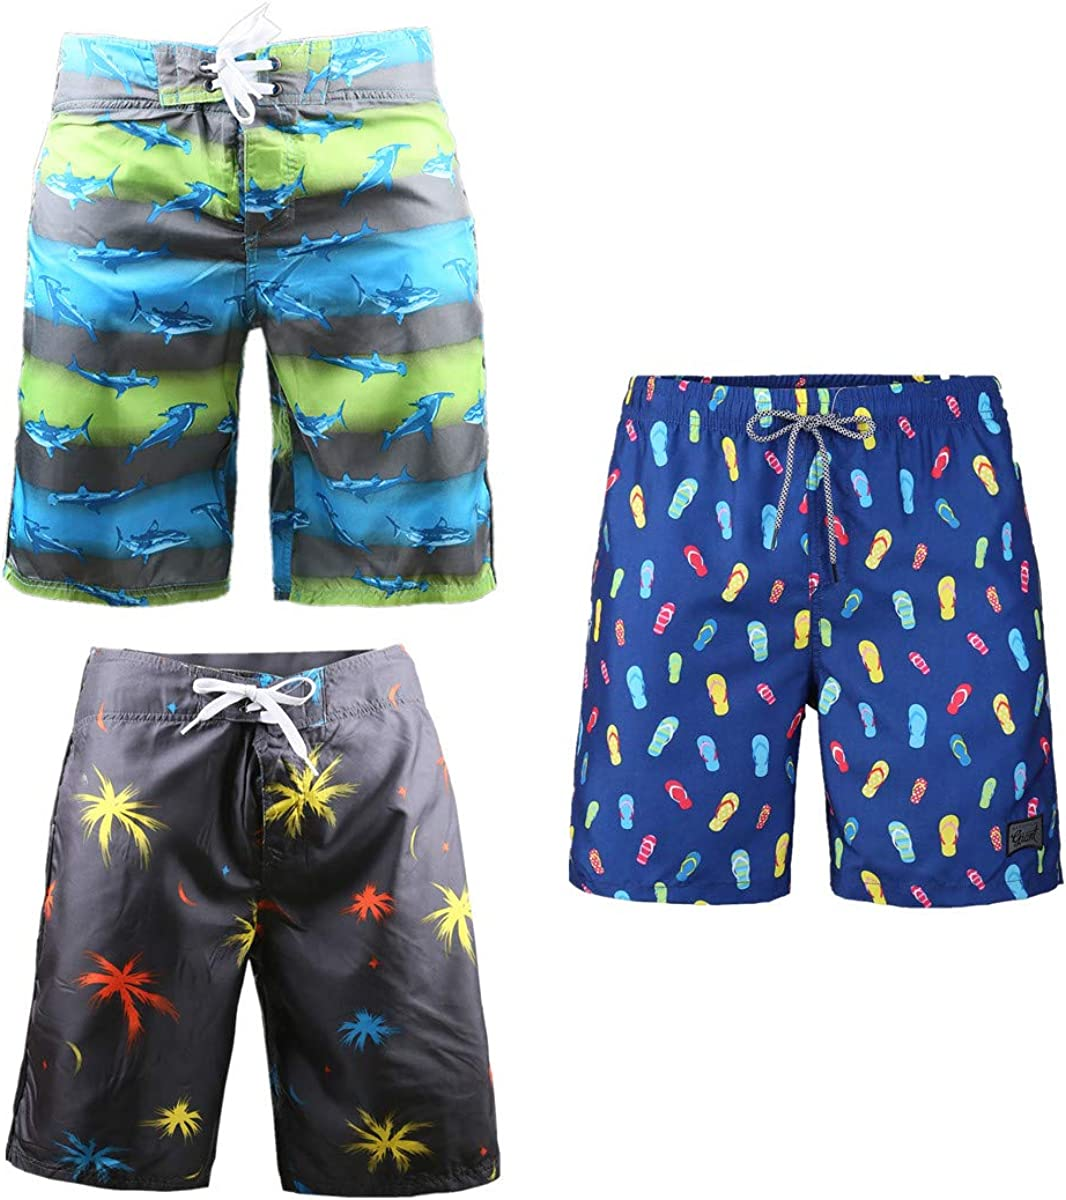 Beautiful Giant 3-Pack Men's Board Shorts with Drawstring Summer Blue Soft Comfy Breathable Swim